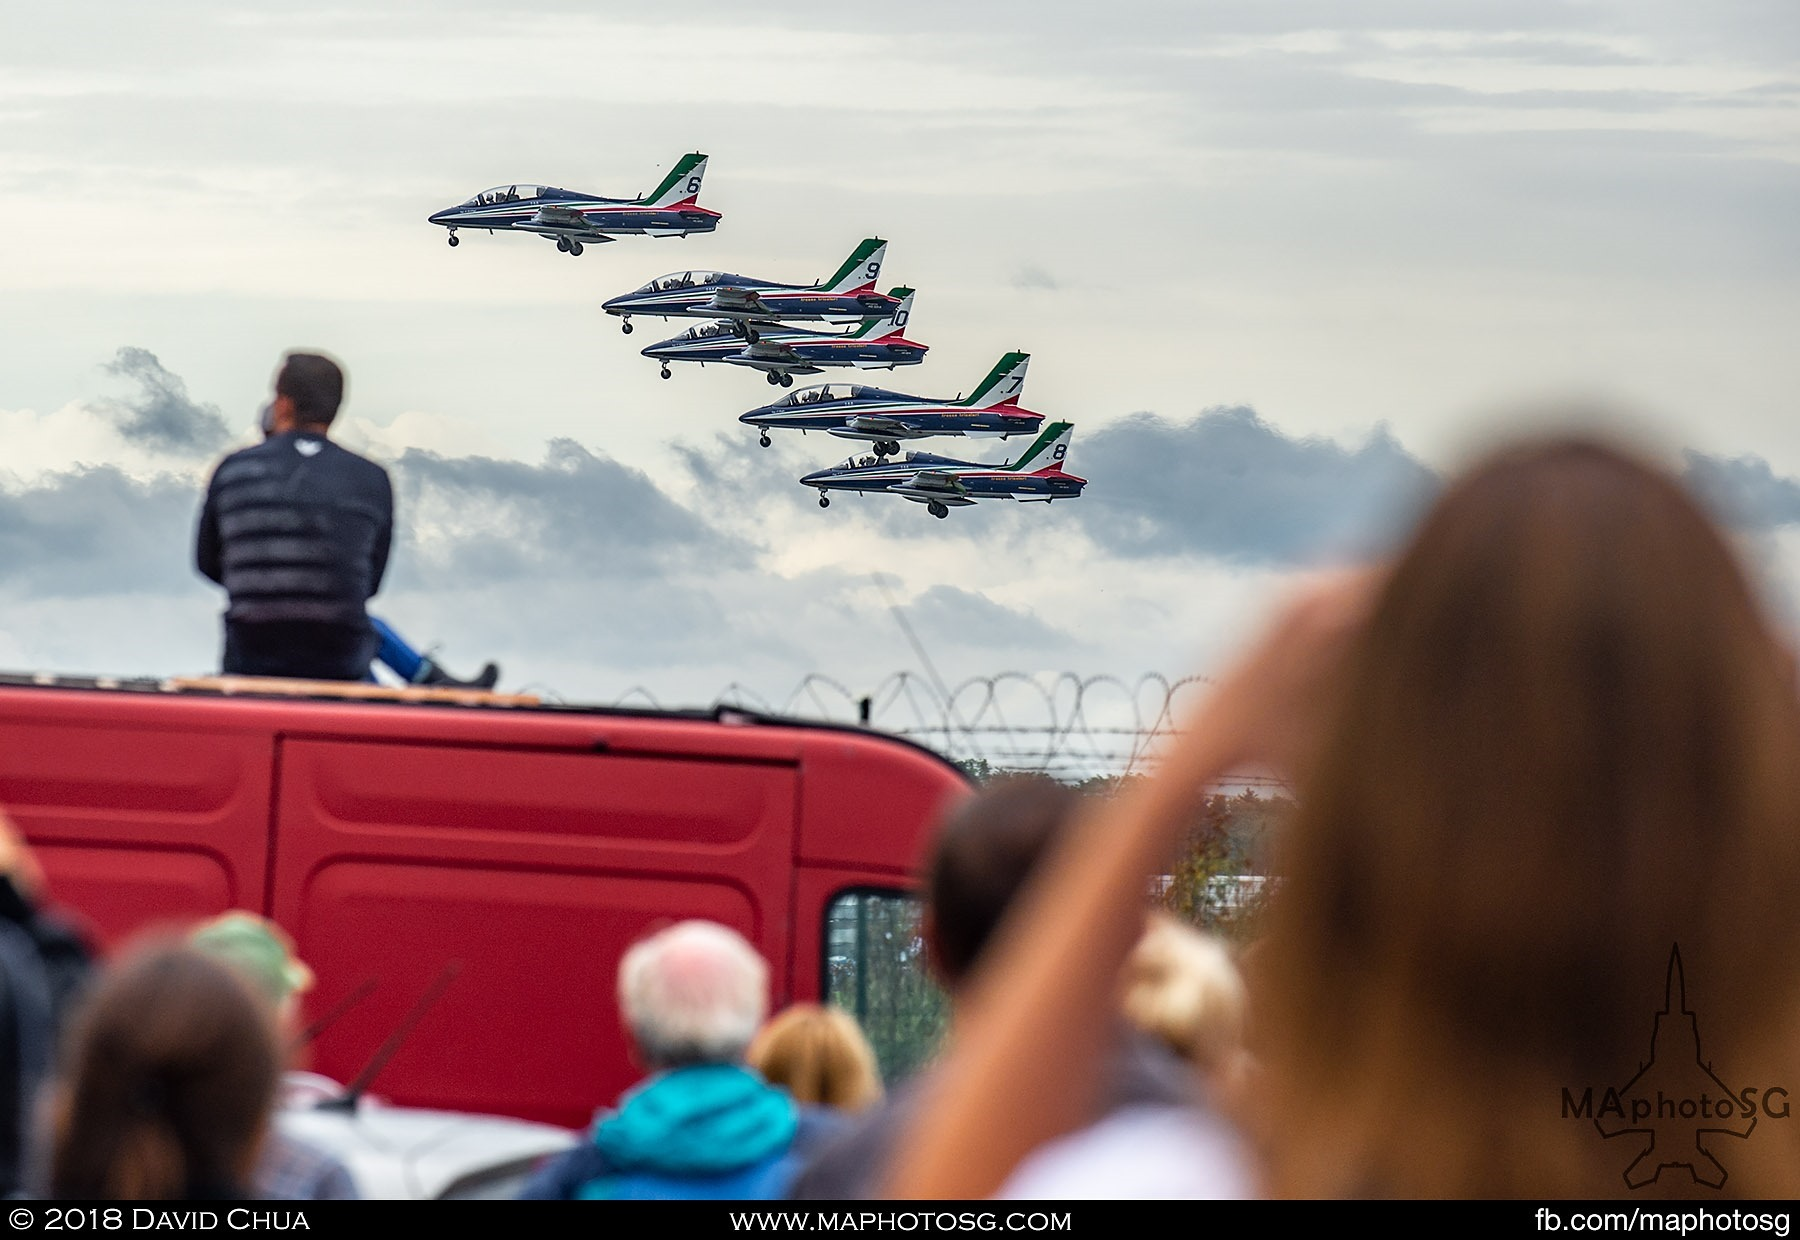 55. Italian Air Force Display Team Frecce Tricolori wows the crowd